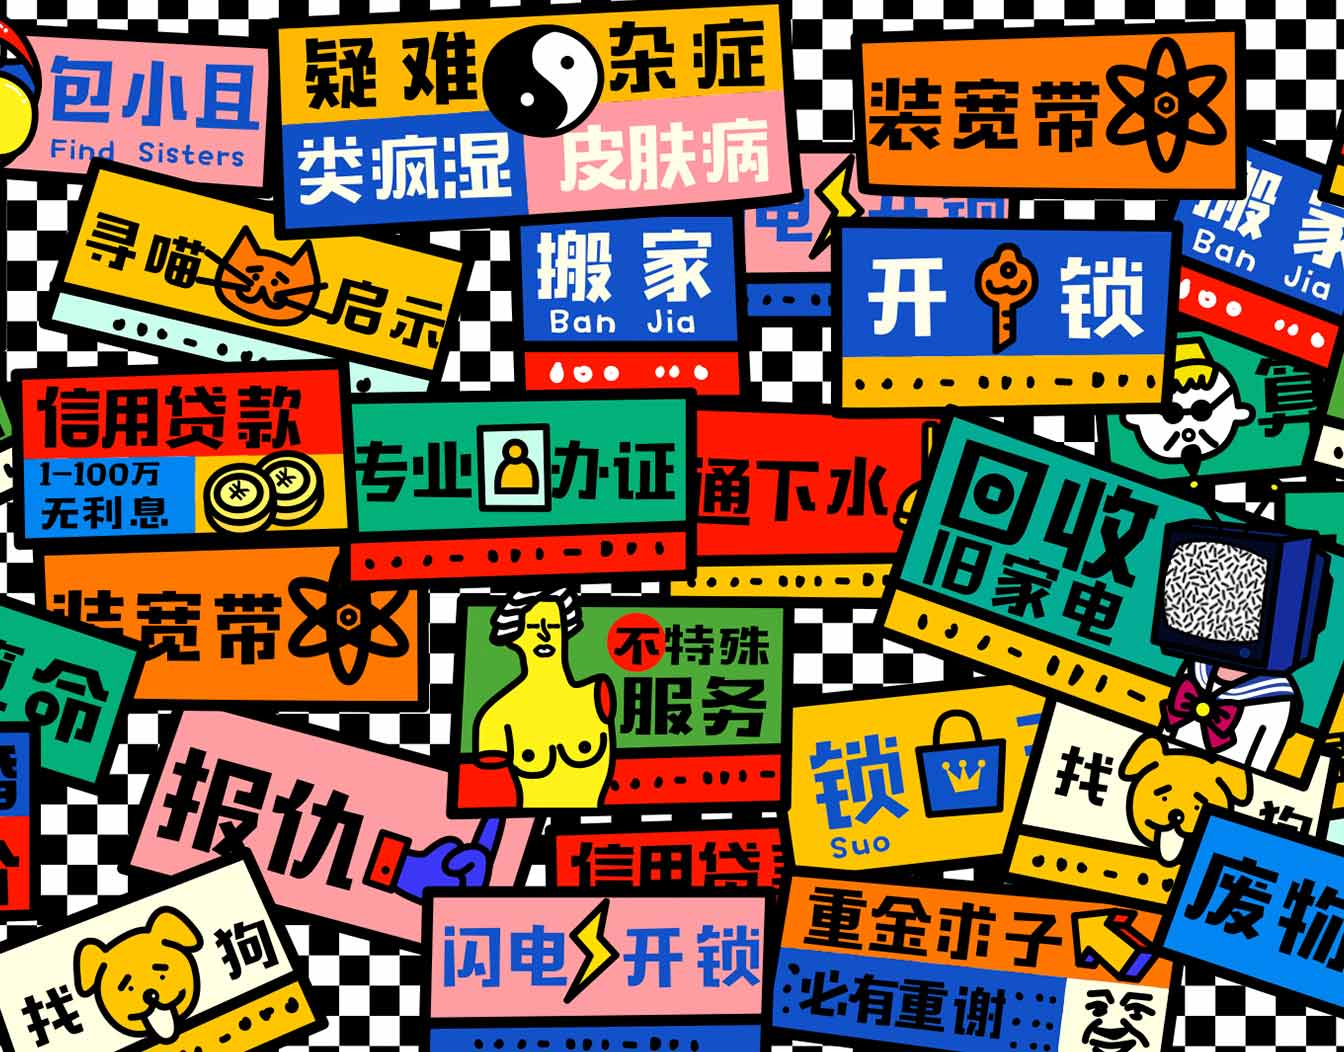 Stickers with Chinese text